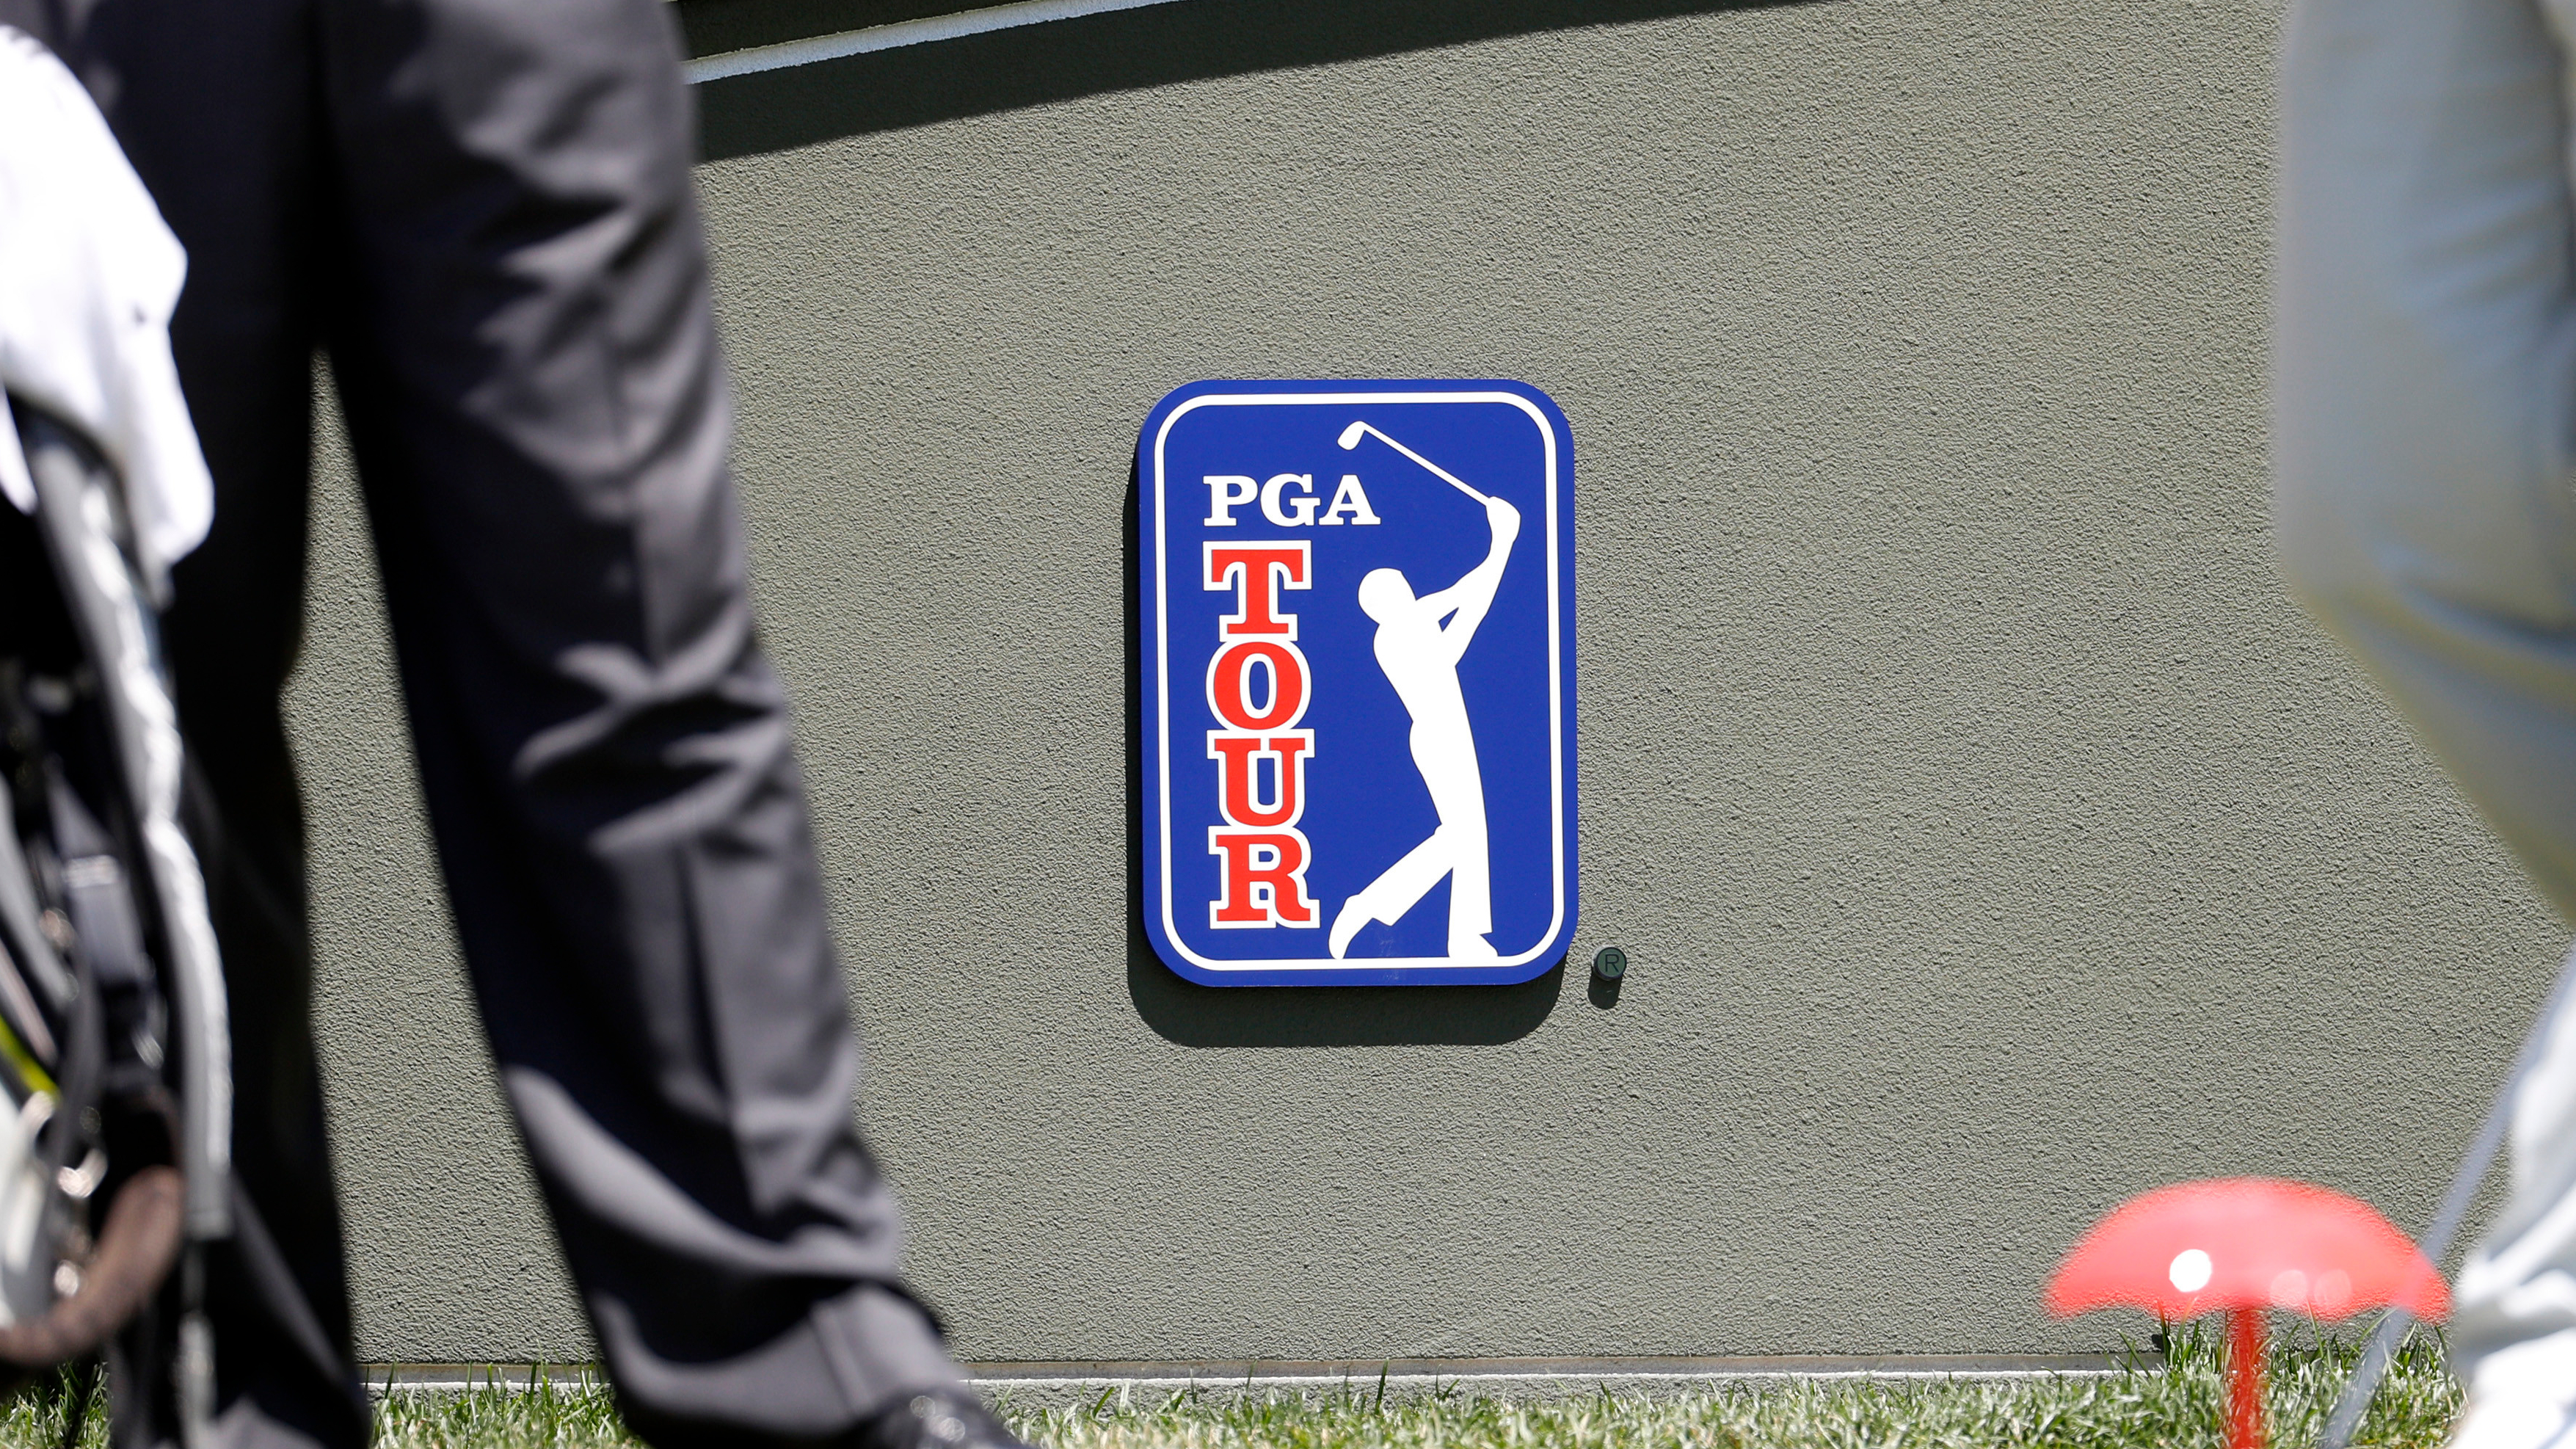 PGA Tour pace of play